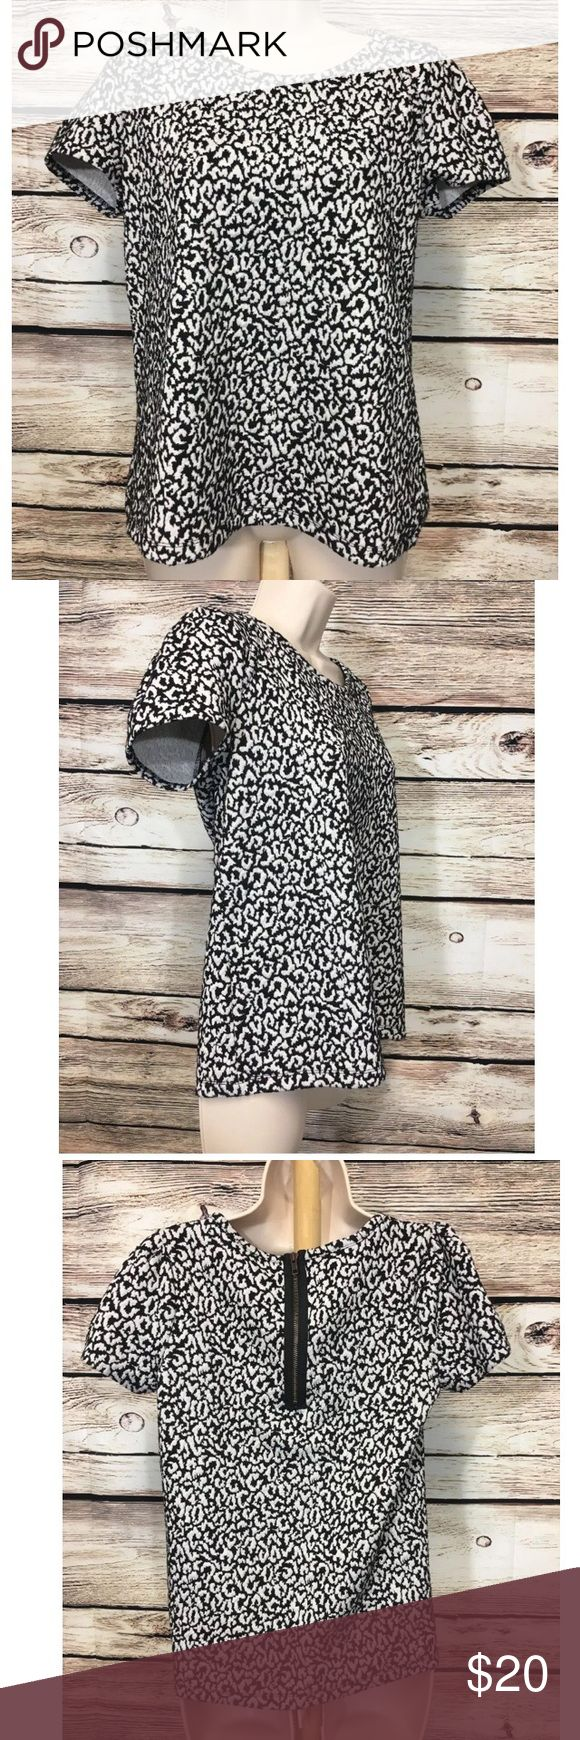 "Postmark Anthropologie Animal Print Shirt Top Postmark Anthropologie Size Medium Black White Animal Print Short Sleeve Shirt   Measured Laying Flat   Pit to Pit - 19"" Collar to Tail - 24"" Anthropologie Tops"